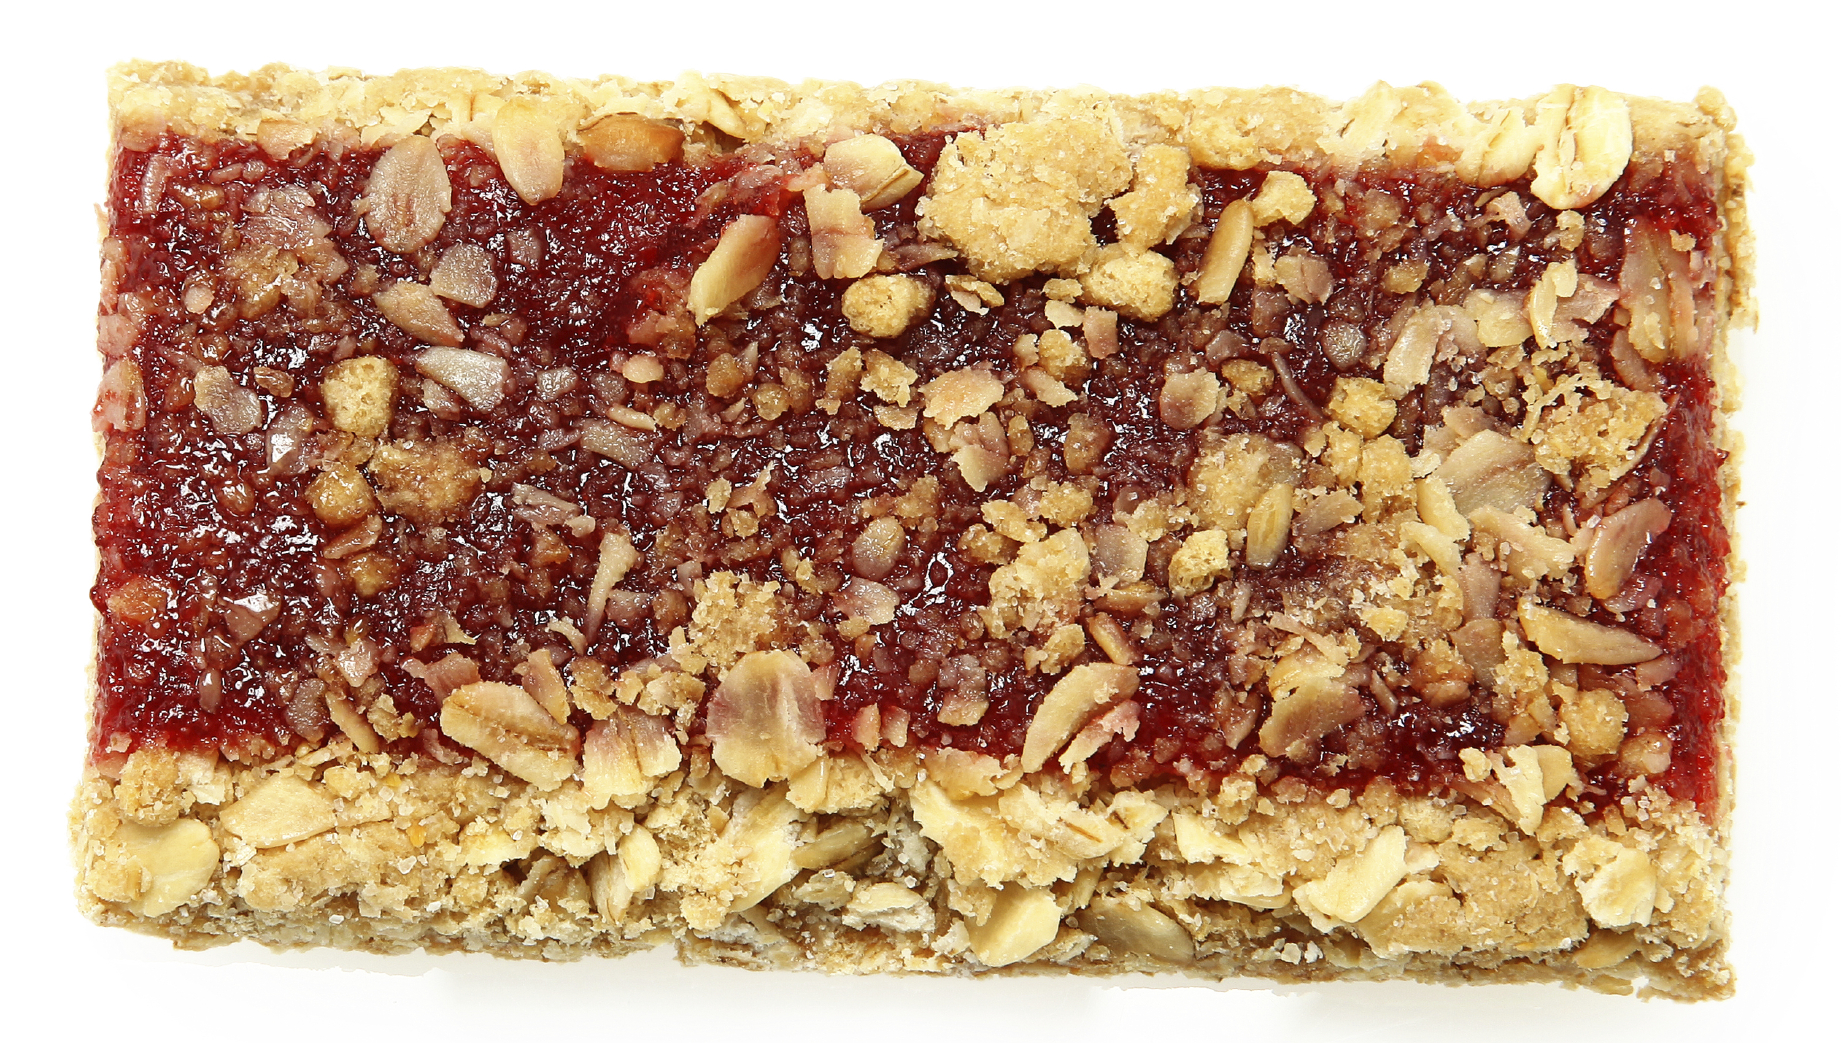 Berry and nut bars